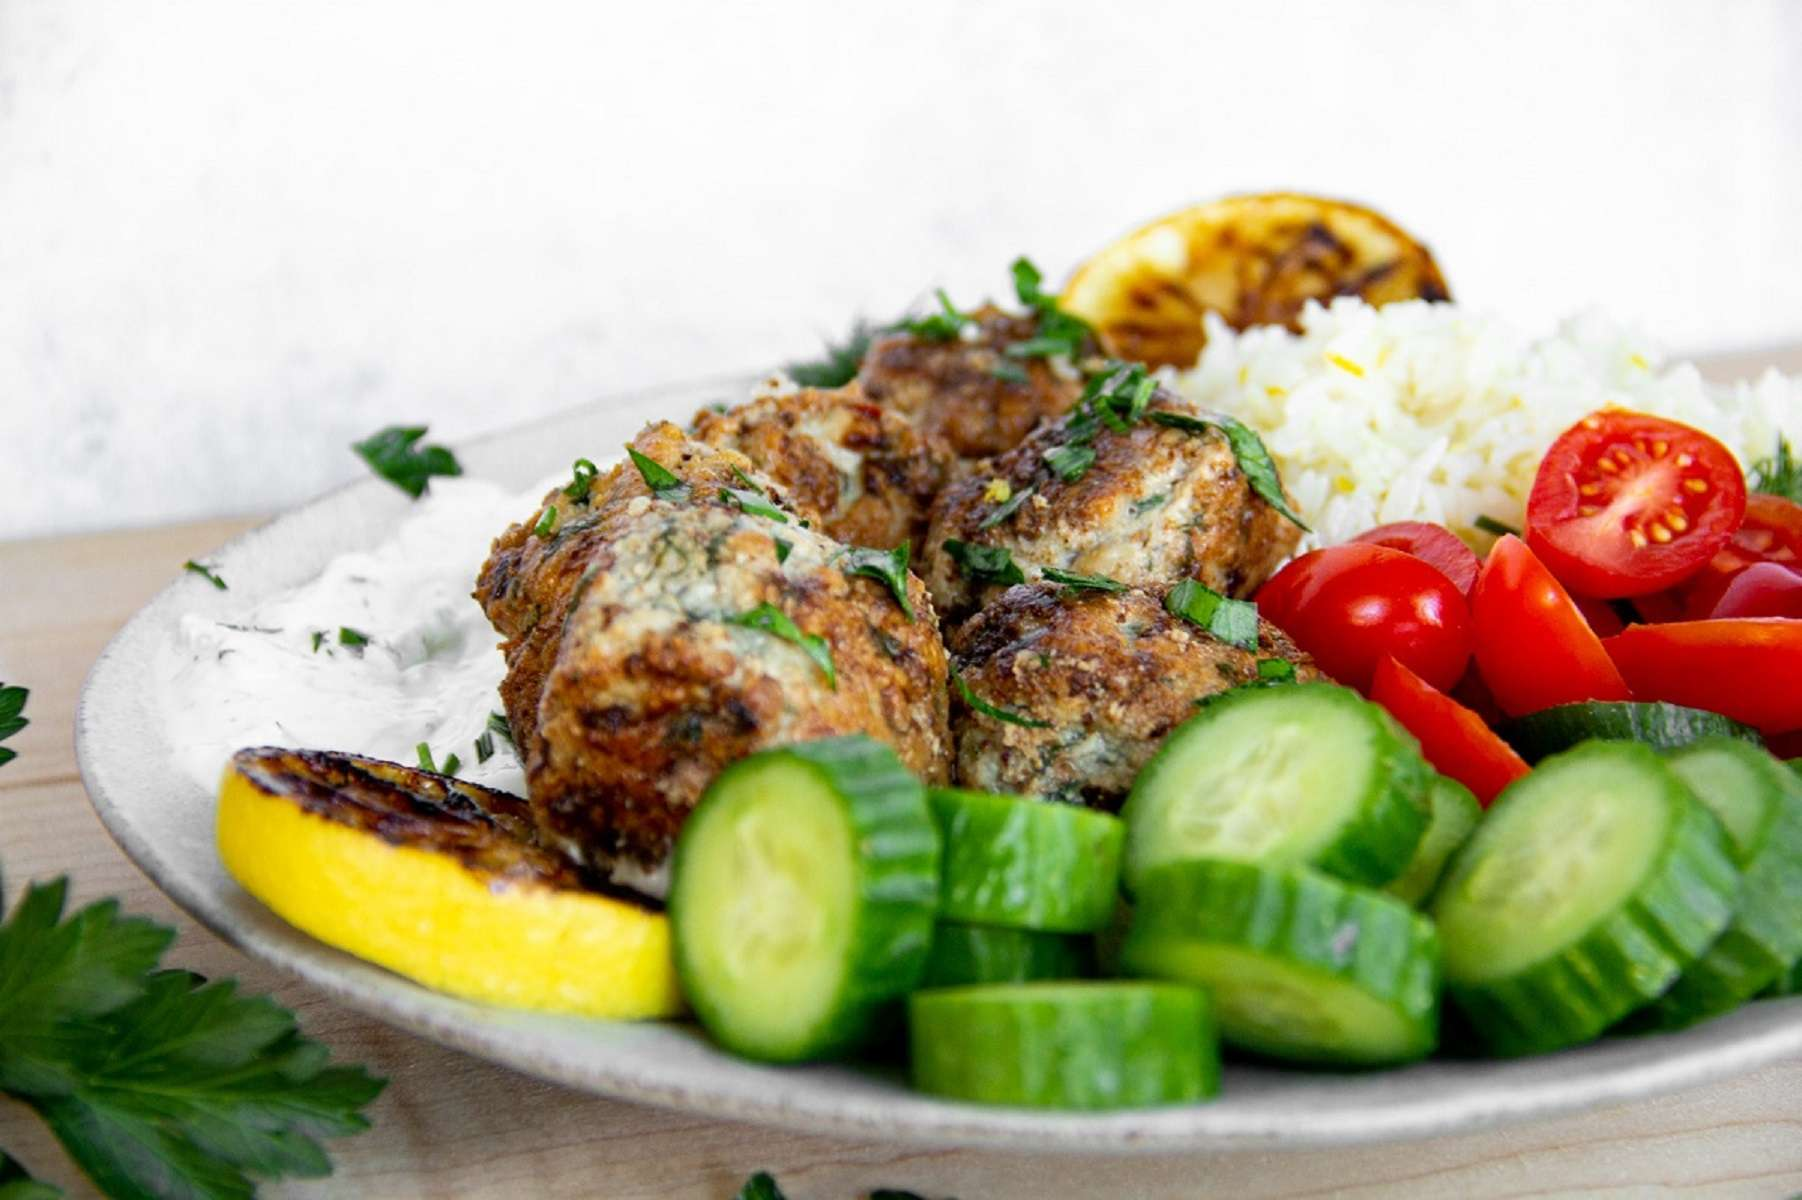 Up close picture of Greek meatballs with cucumber, tomatoes, and zesty lemon rice